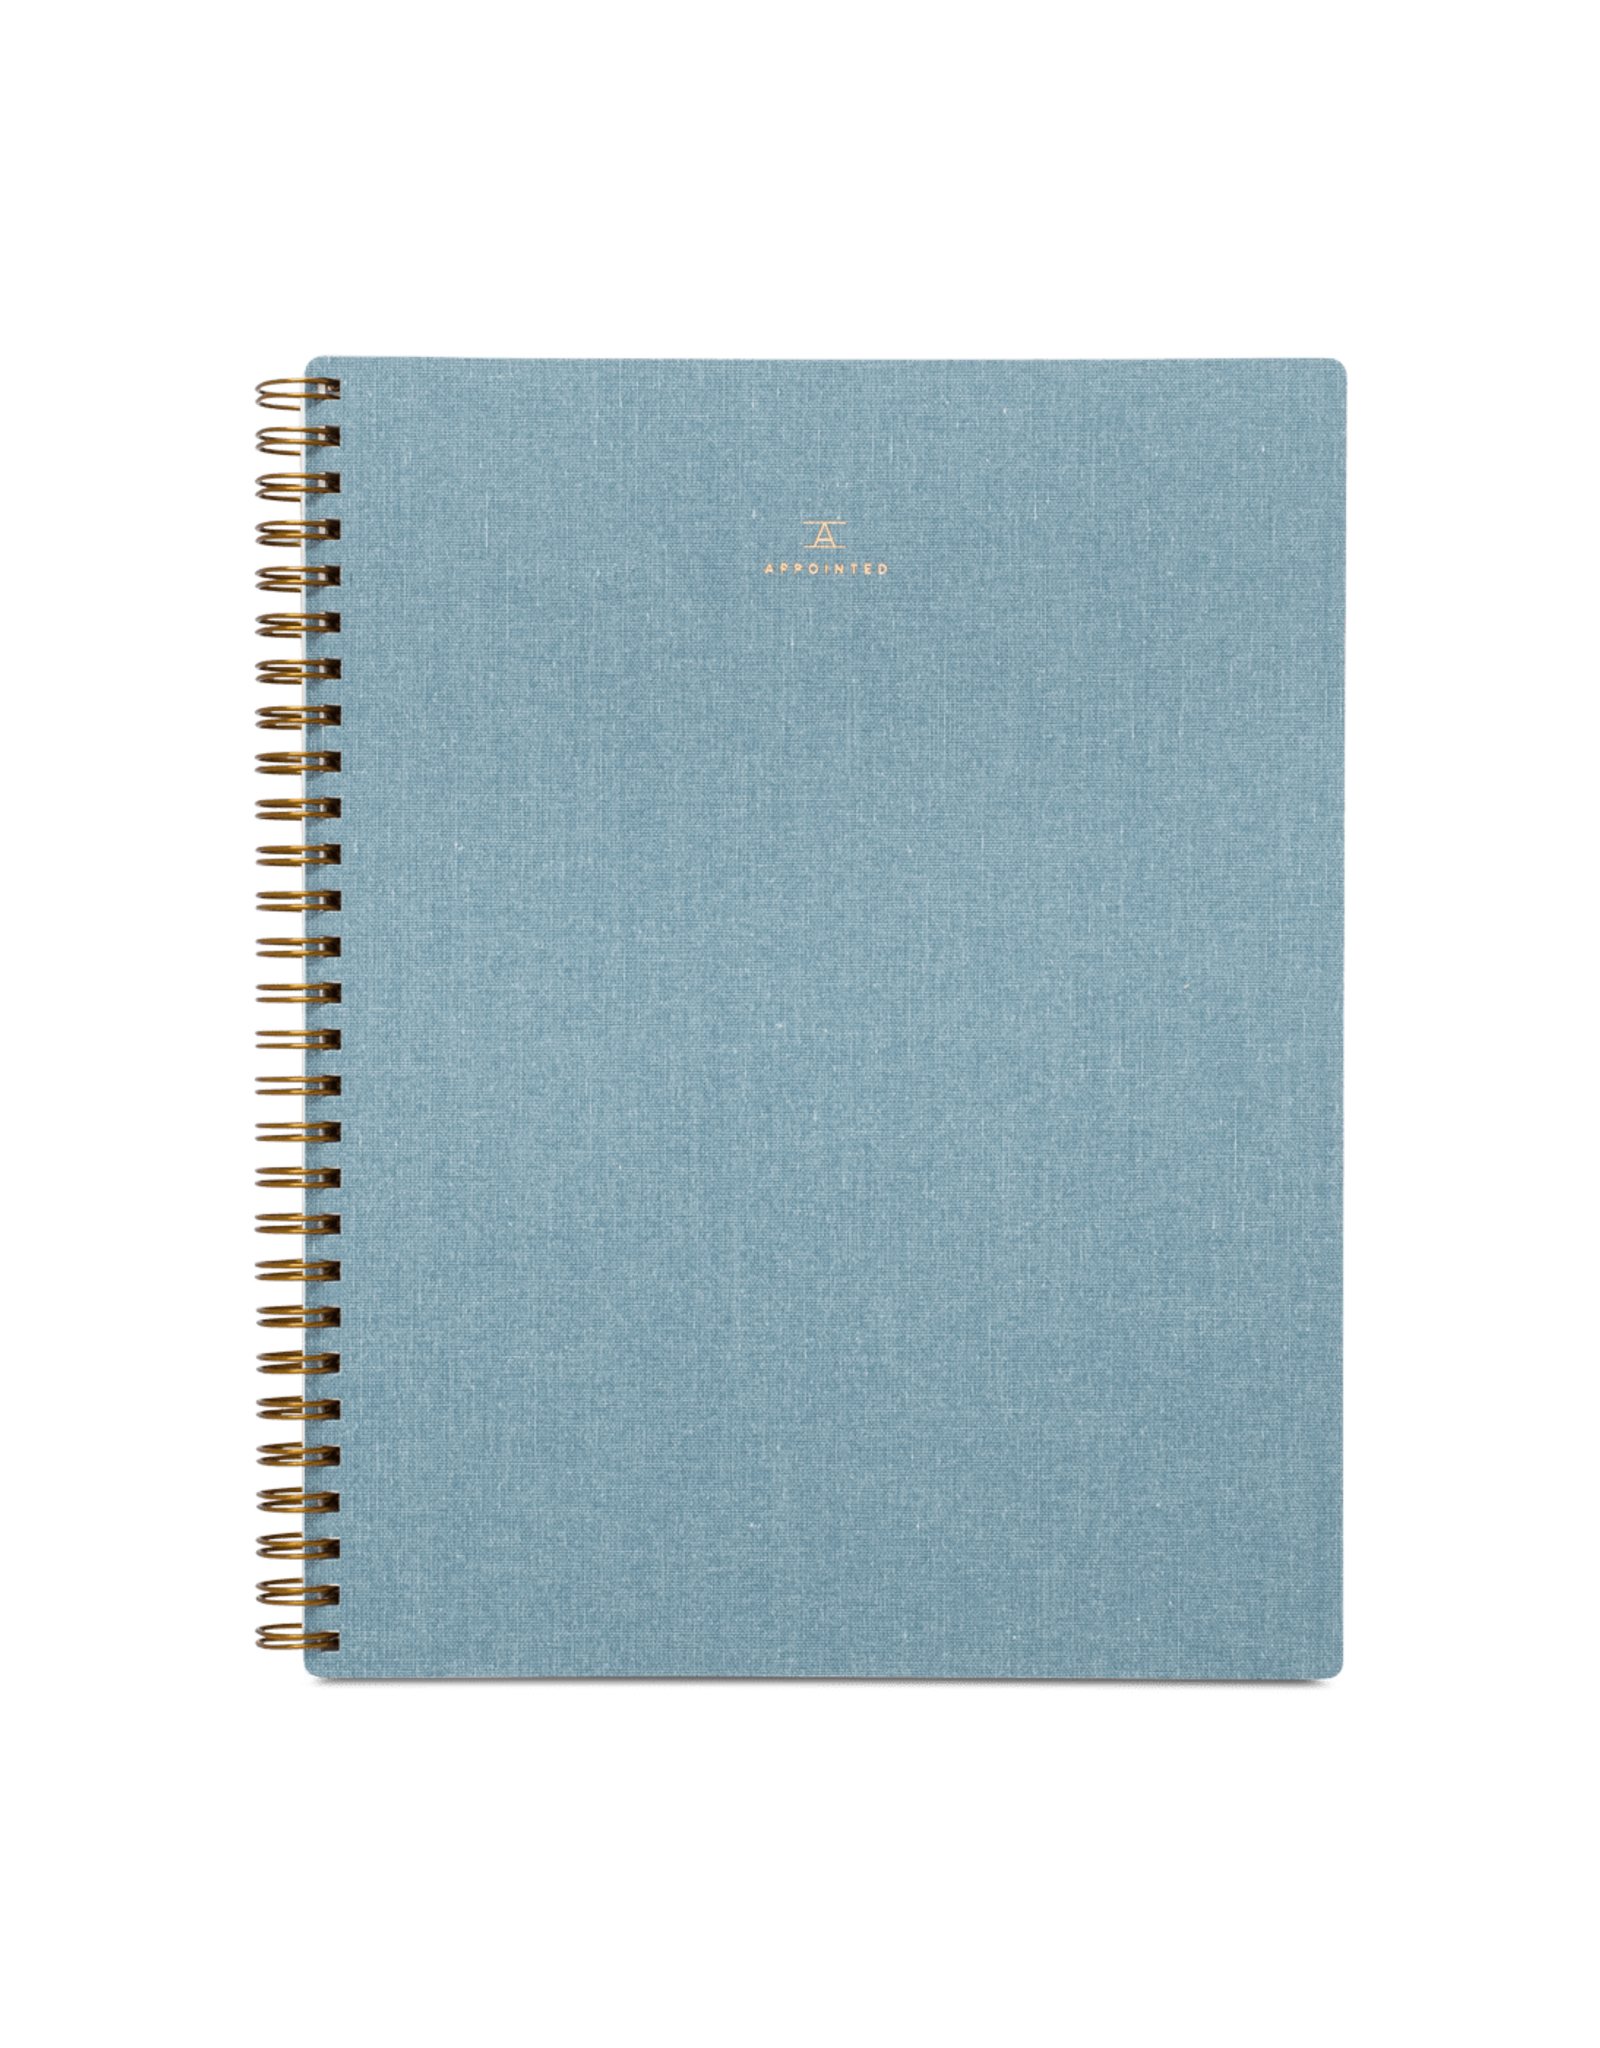 Notebook - Chambray Blue - Lined